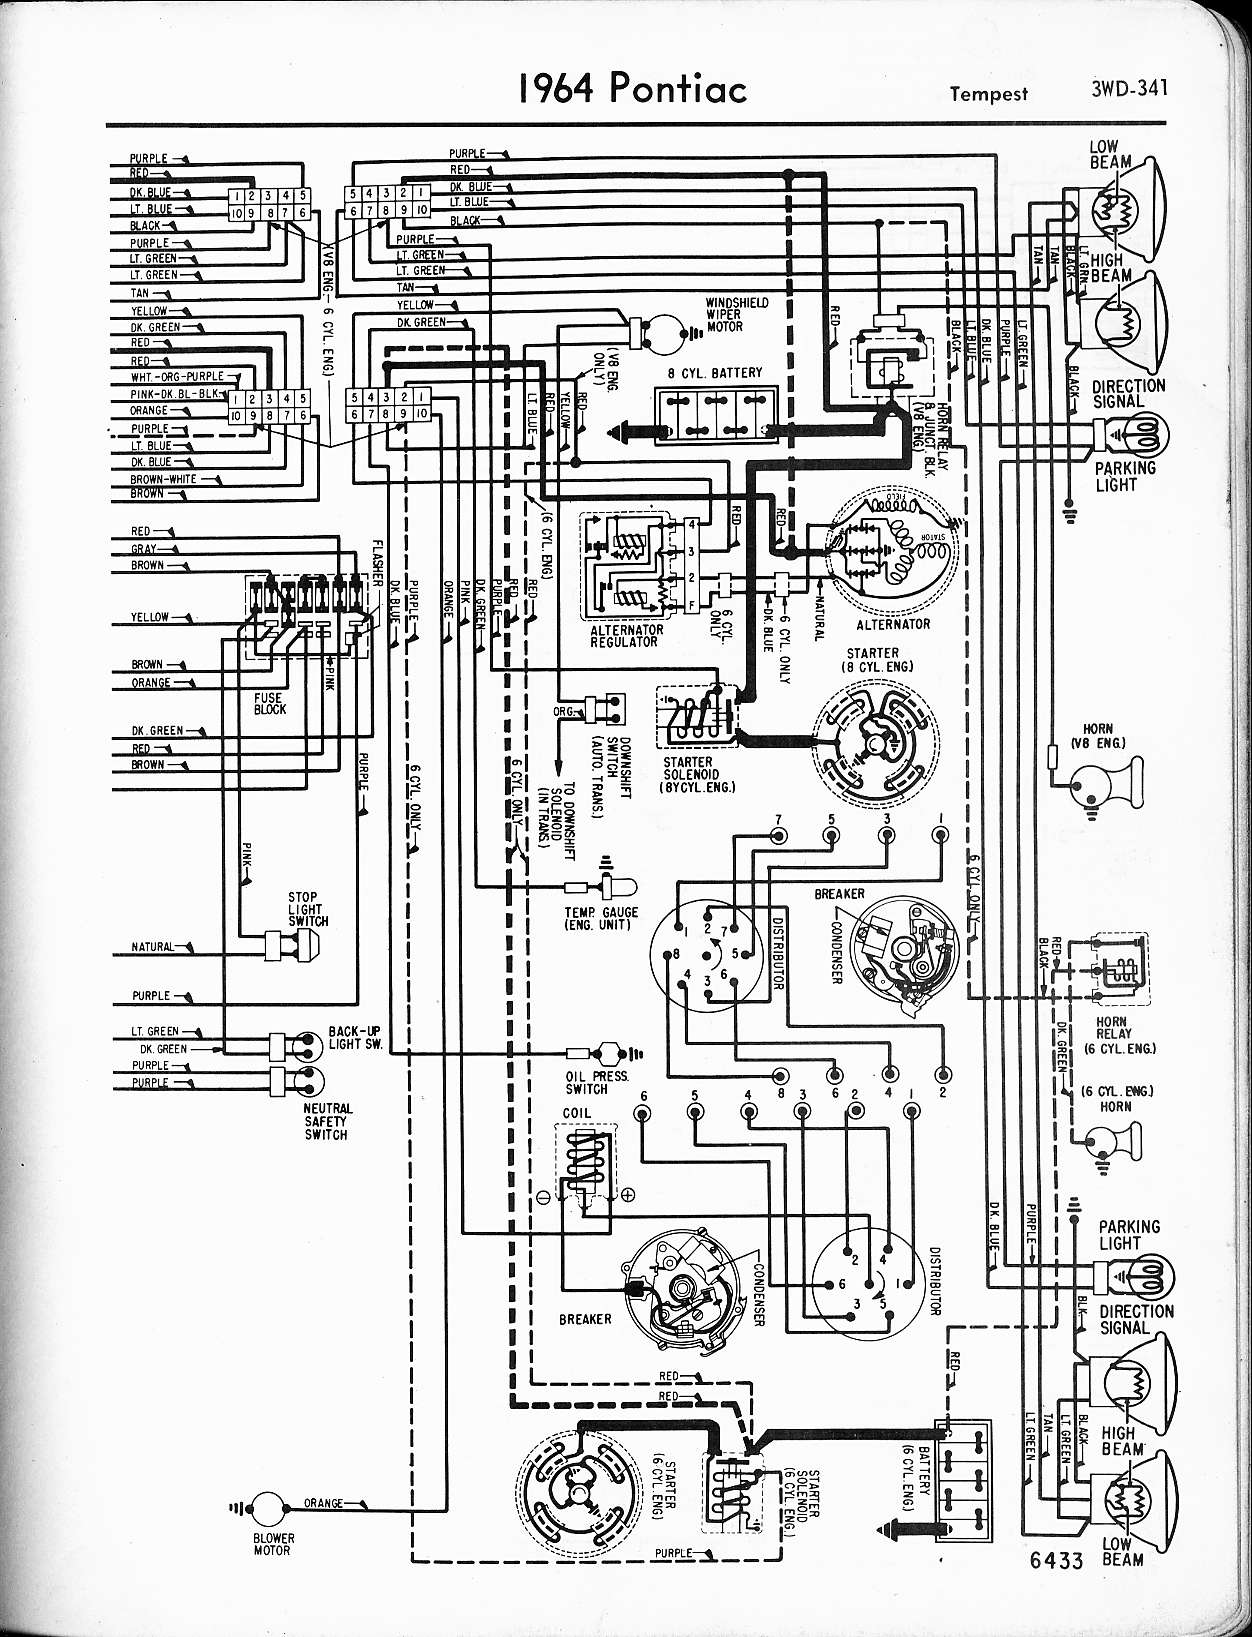 1964 Pontiac Tempest Wiring Diagram - Wiring Diagrams on